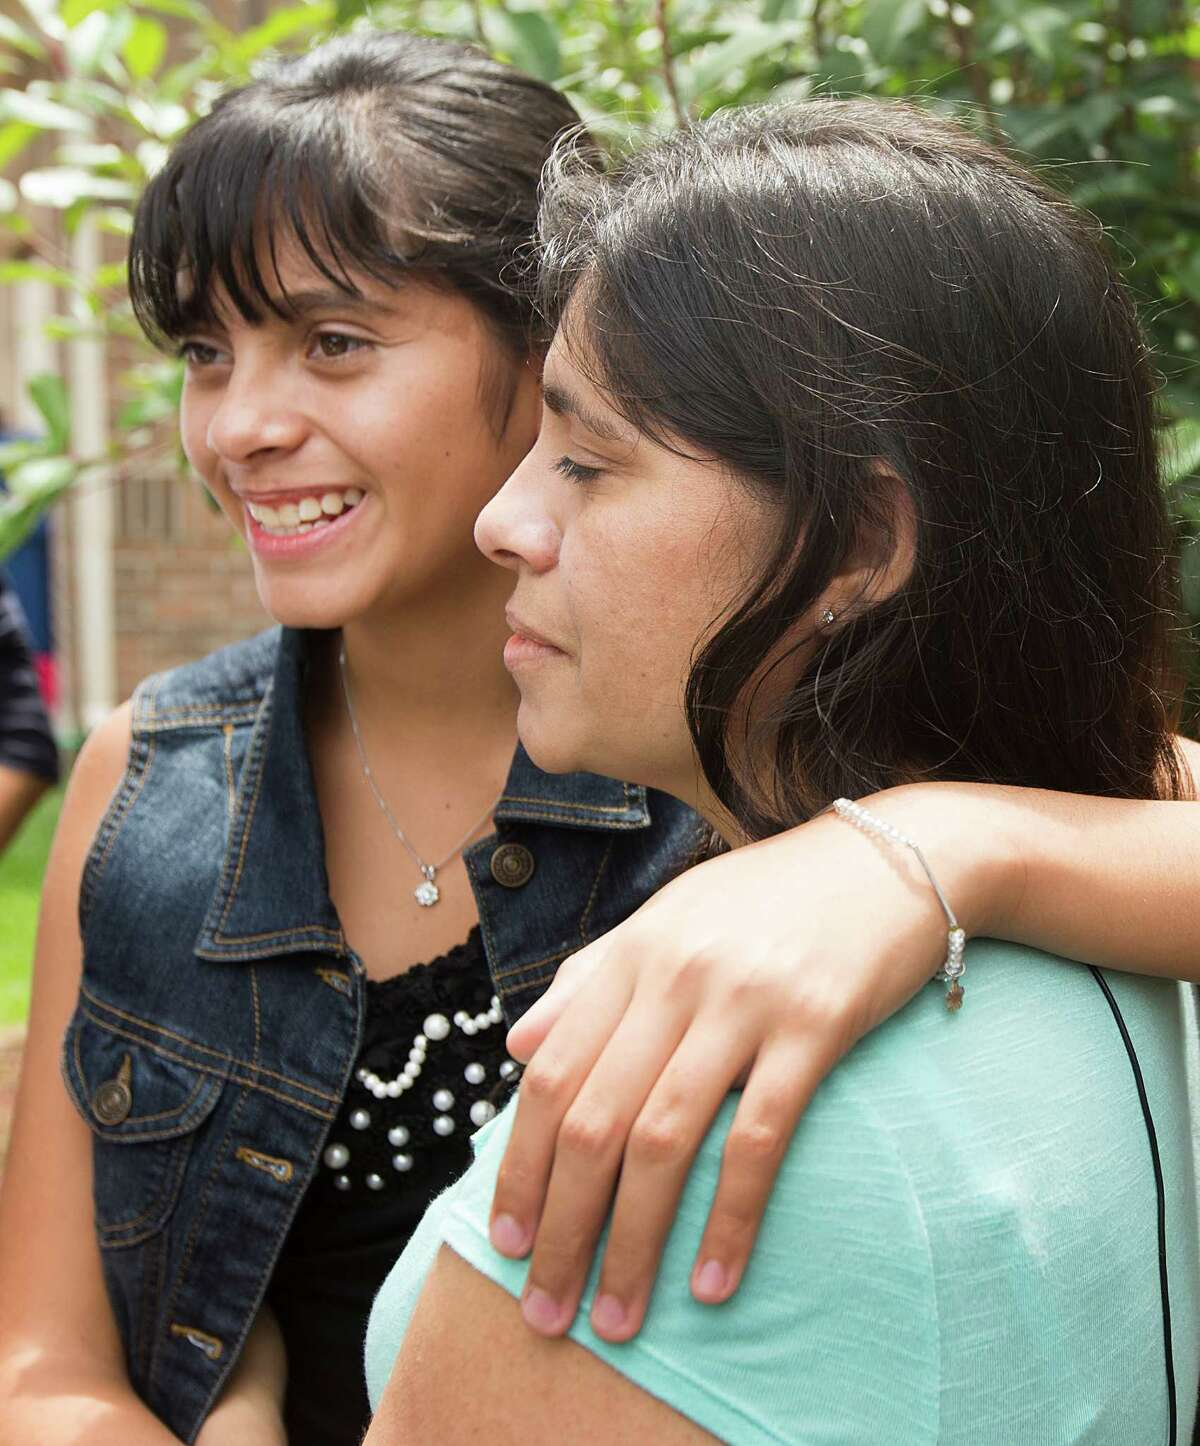 Alondra Diaz, 13, embraces her mother, Dorotea Garcia, after returning to the United States, following an 8-year cross-border custody case, on Saturday, May 16, 2015, in Fresno, Texas. Diaz was returned to her mother Friday and was flown to Houston, after she was taken to Mexico in 2007 by her father, Reynaldo Diaz, without her mother's consent, and her whereabouts had not been known until recently.